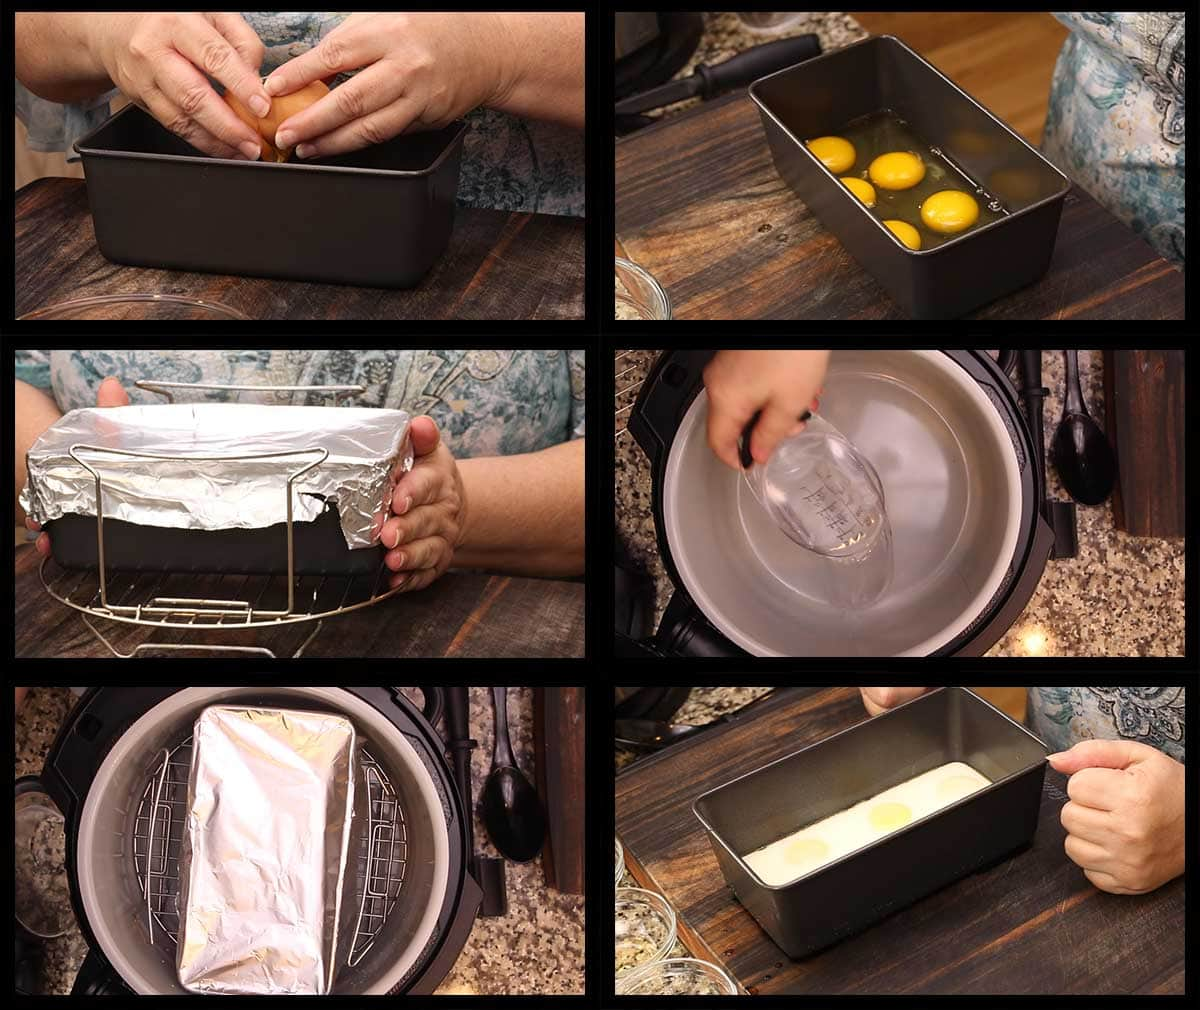 cracking the eggs into a loaf pan and pressure cooking